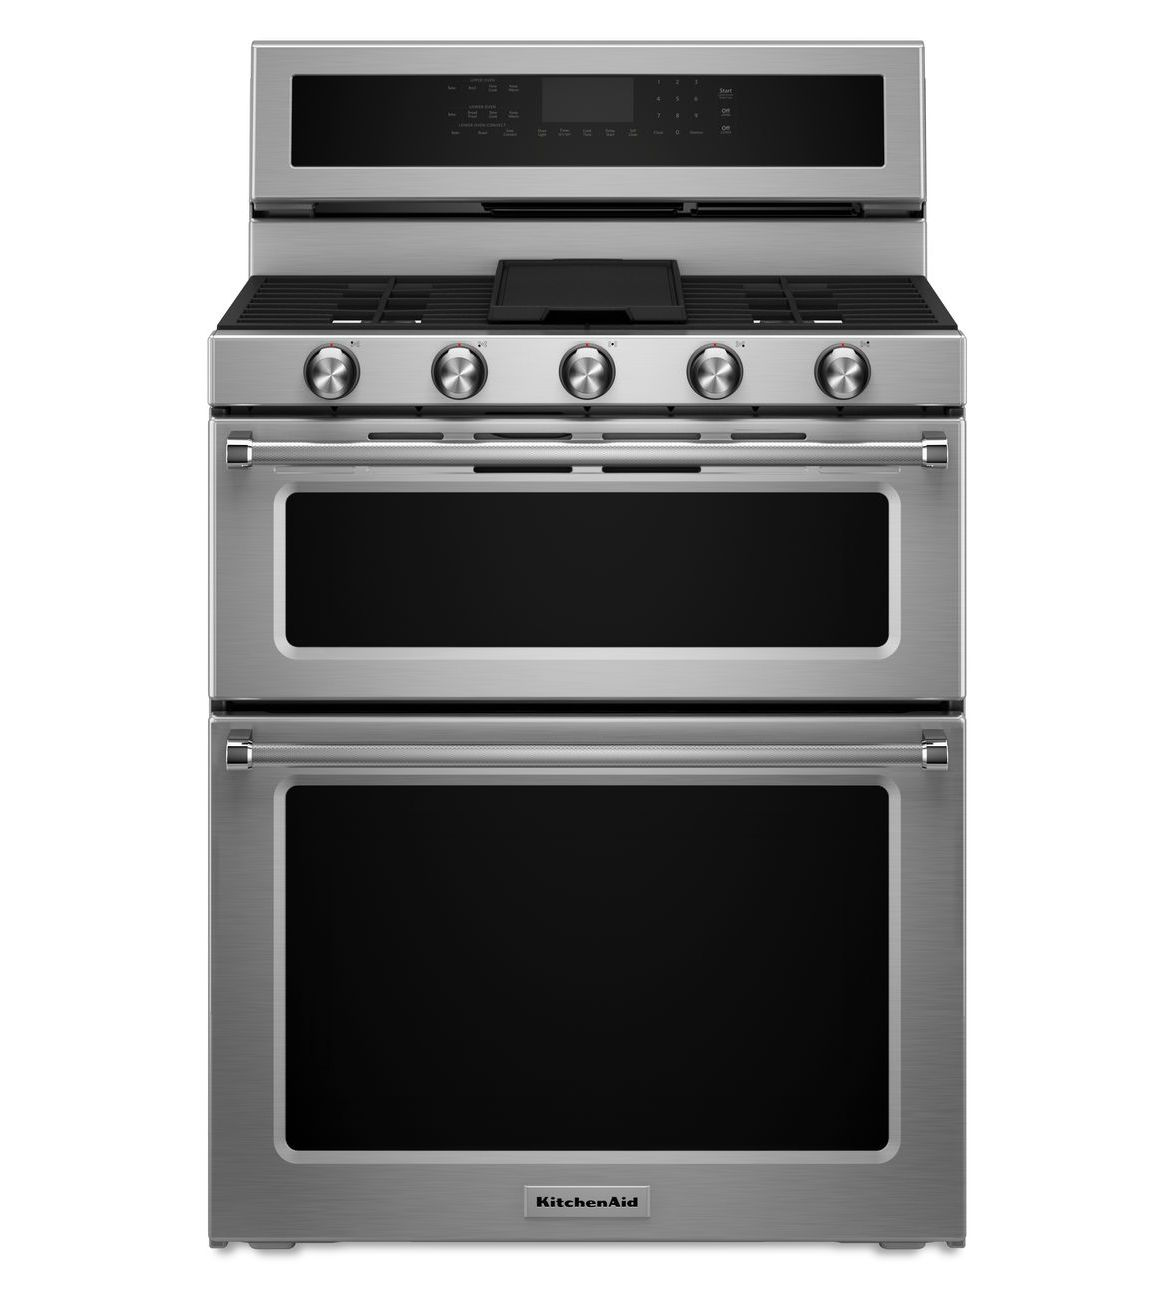 KitchenAid Dual Fuel Double Oven Convection Range